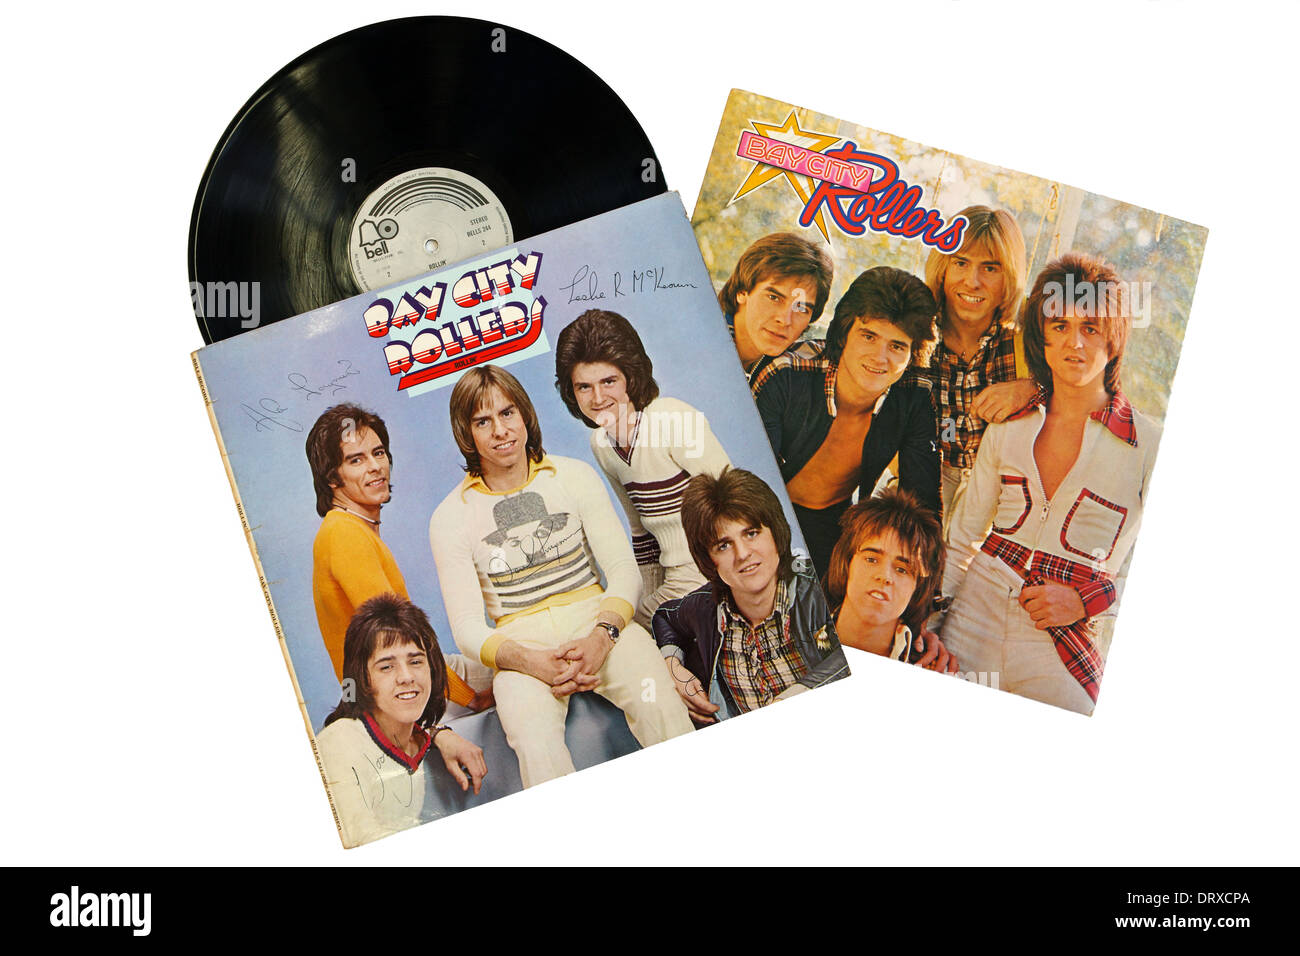 Bay City Rollers LP Records on a white background Stock Photo